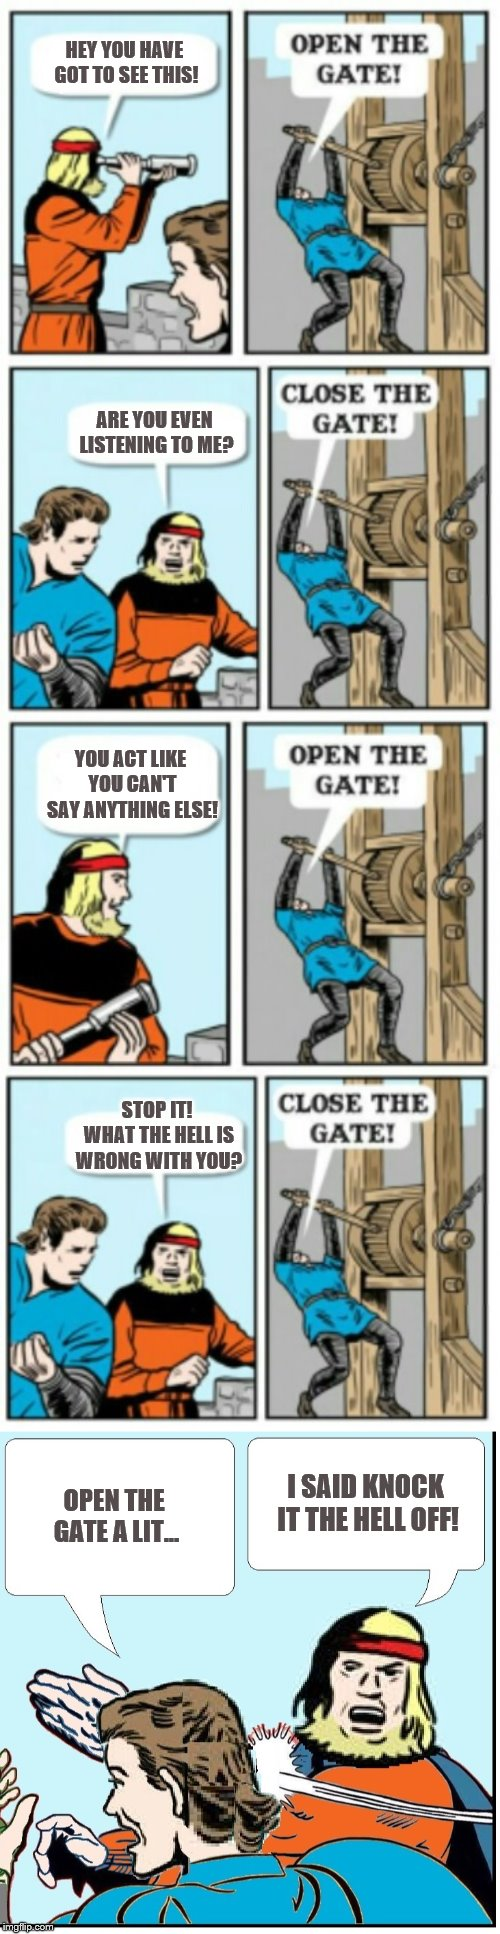 Open the gate one more time... | HEY YOU HAVE GOT TO SEE THIS! I SAID KNOCK IT THE HELL OFF! ARE YOU EVEN LISTENING TO ME? YOU ACT LIKE YOU CAN'T SAY ANYTHING ELSE! STOP IT! | image tagged in open the gate,memes | made w/ Imgflip meme maker